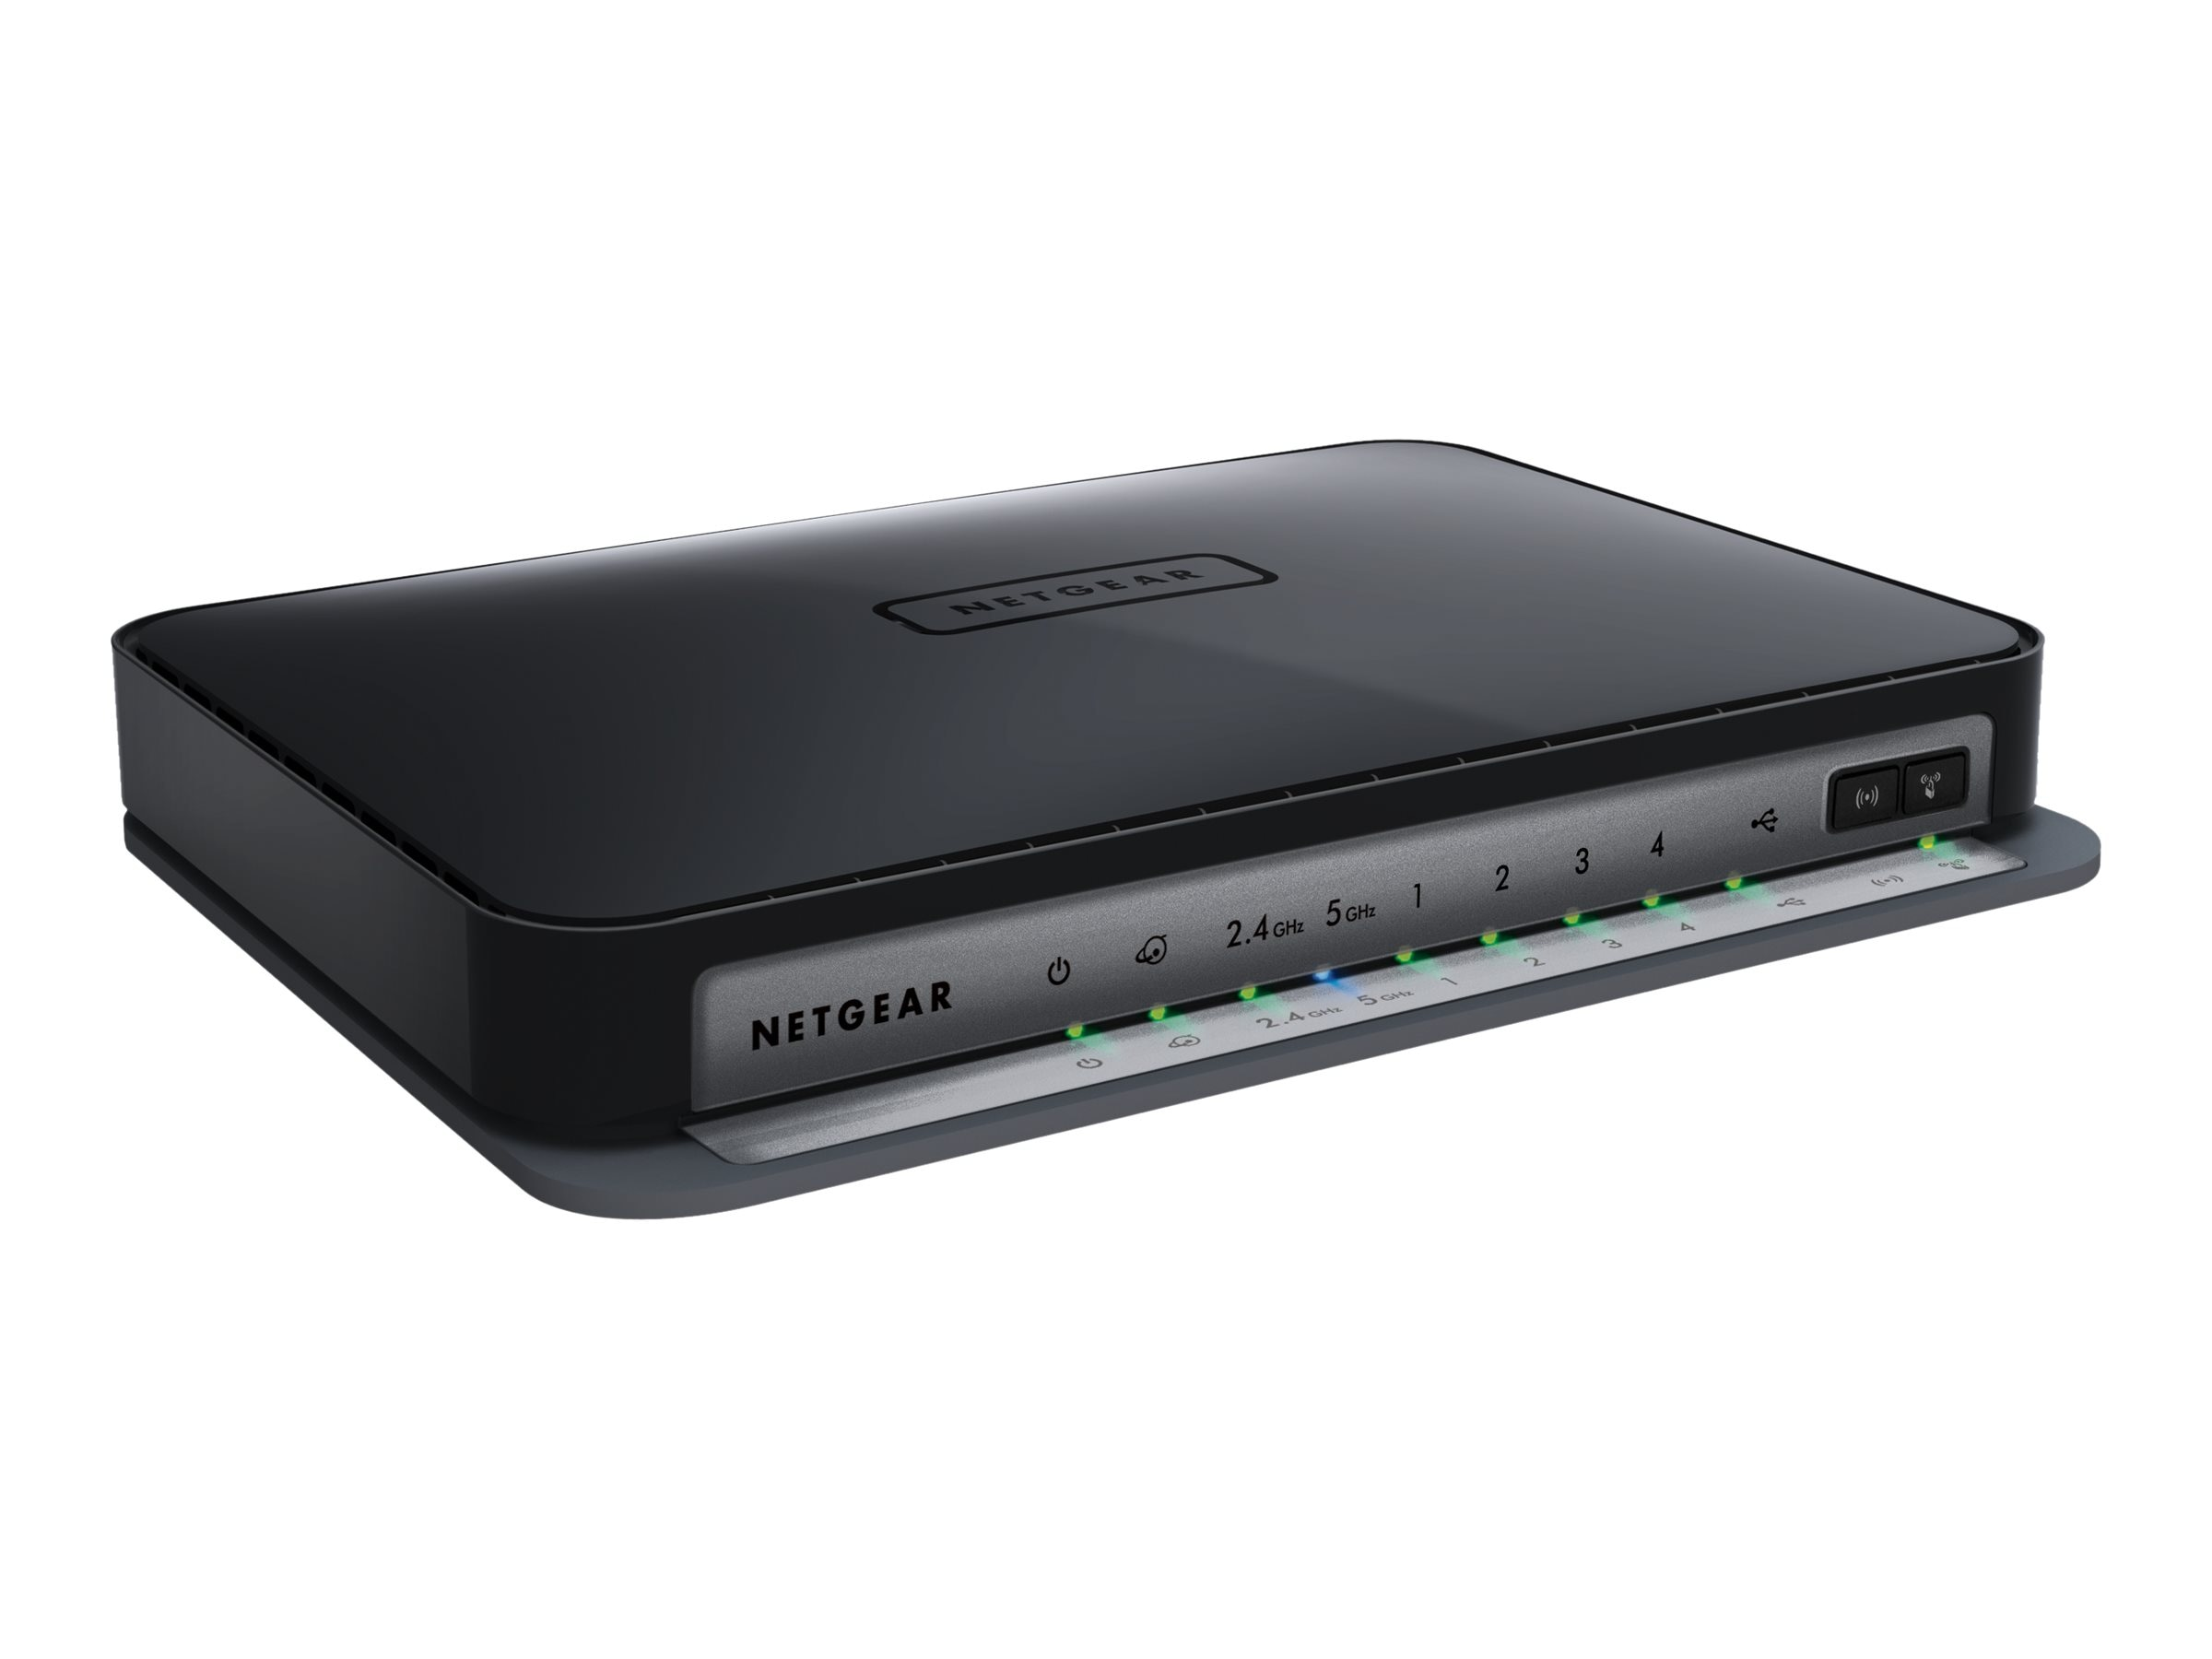 Netgear N750 Dual-Band Wireless-N Gigabit Router with 4-Port Ethernet Switch